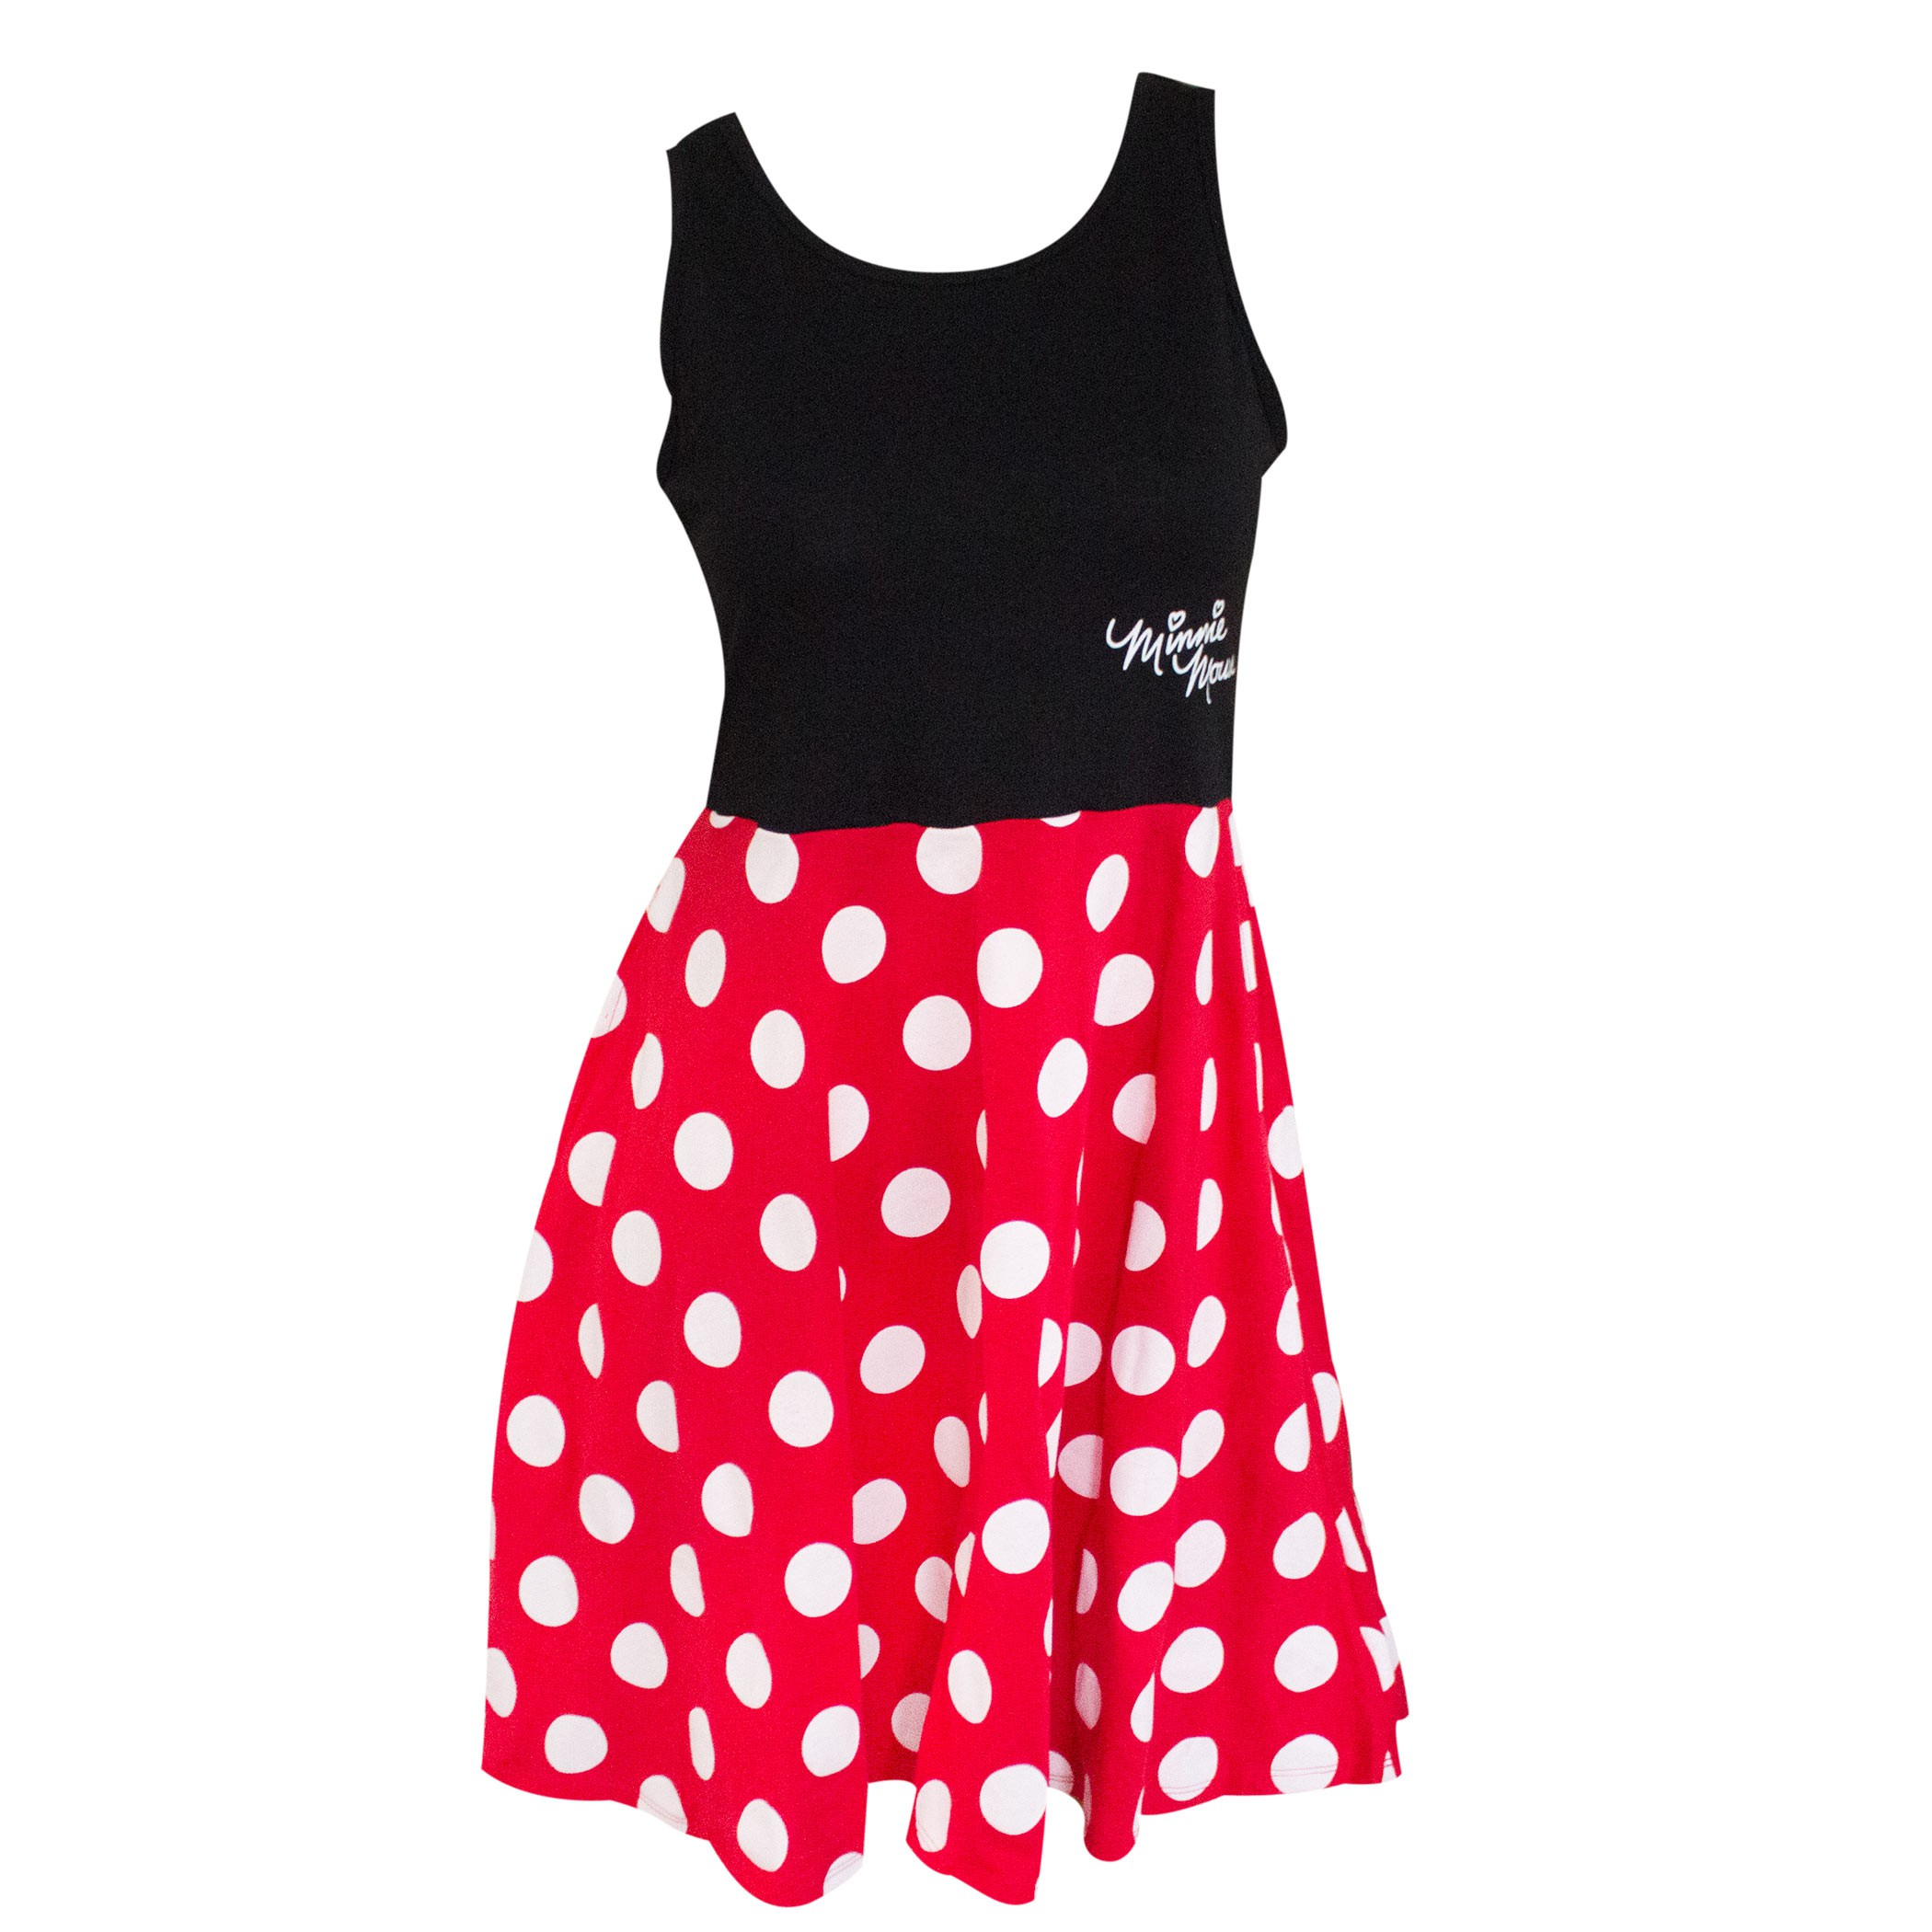 a3a76d1fbd7 Minnie Mouse Women's Black And Red Polka Dot Dress